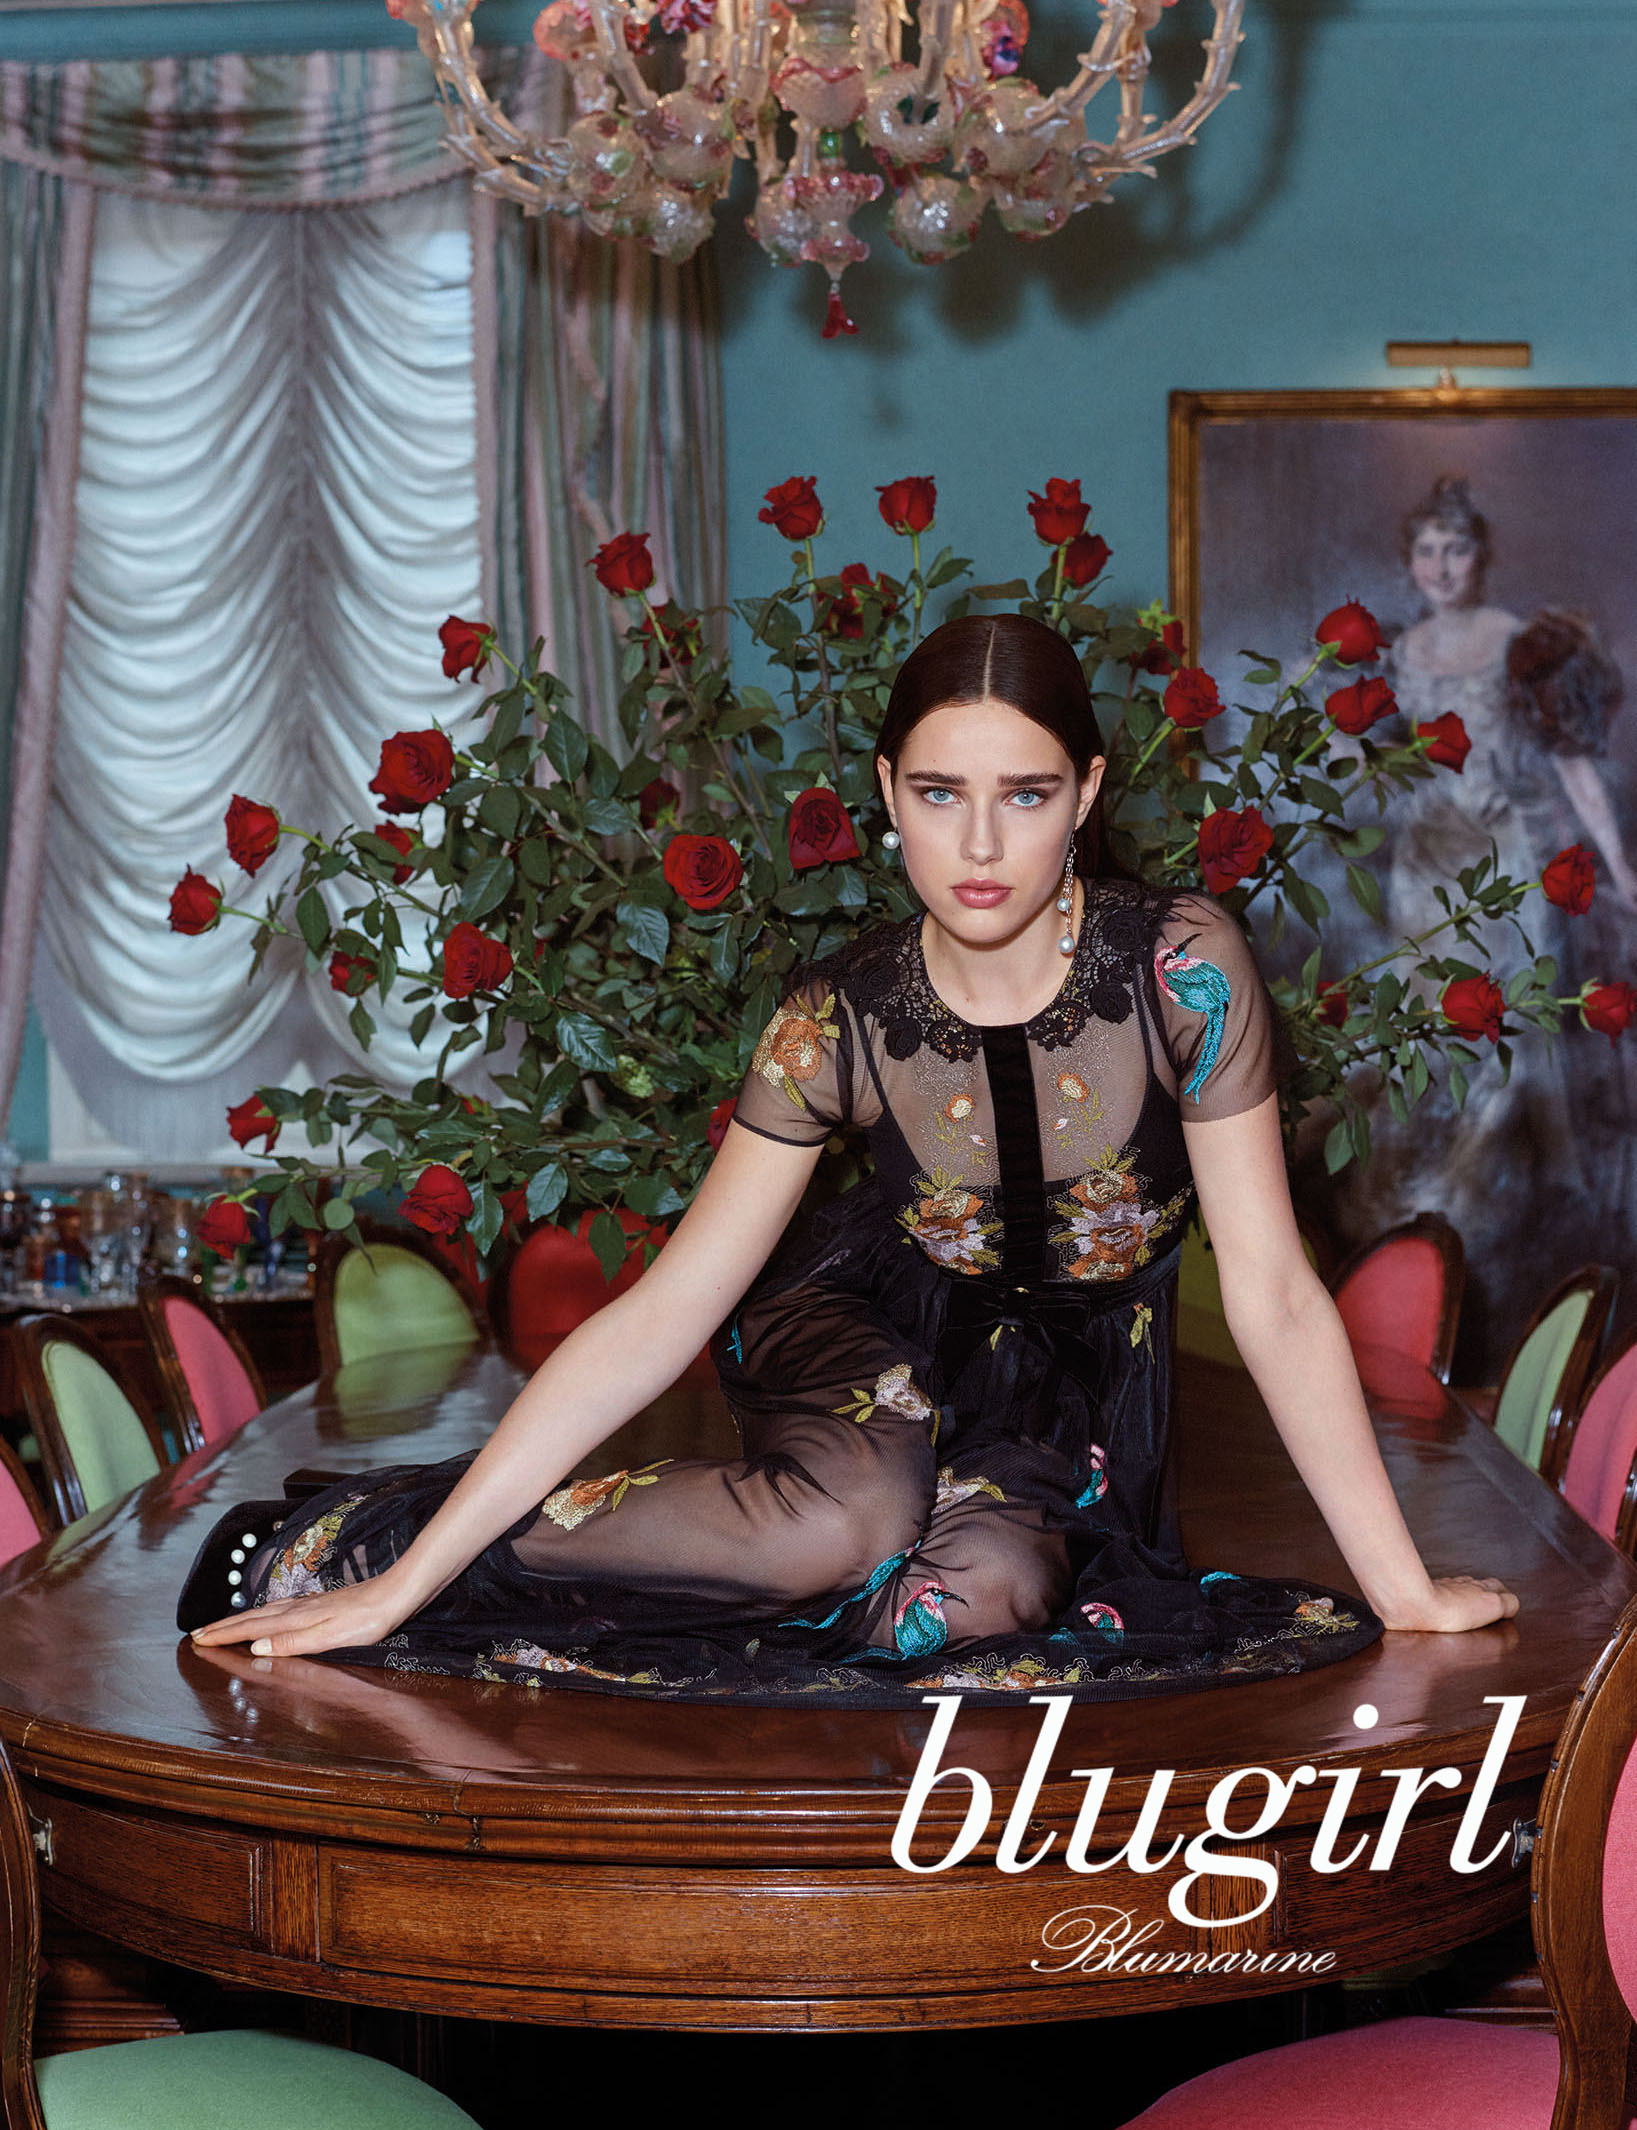 Blugirl ADV FW 17/18 | Michelangelo di Battista | Blugirl | Numerique Retouch Photo Retouching Studio